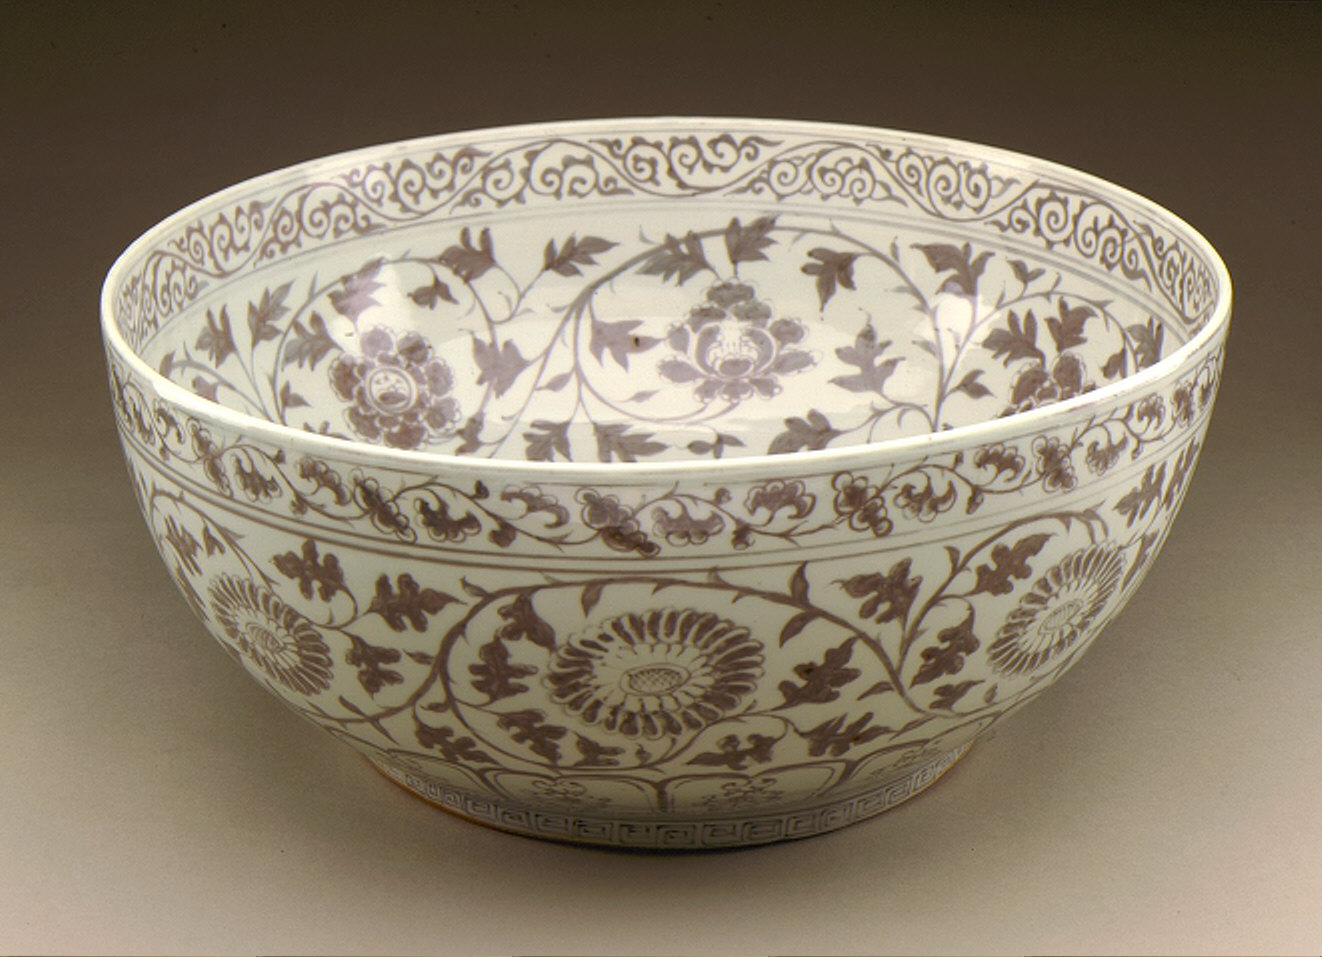 Large Bowl (Wan) with Floral Scrolls